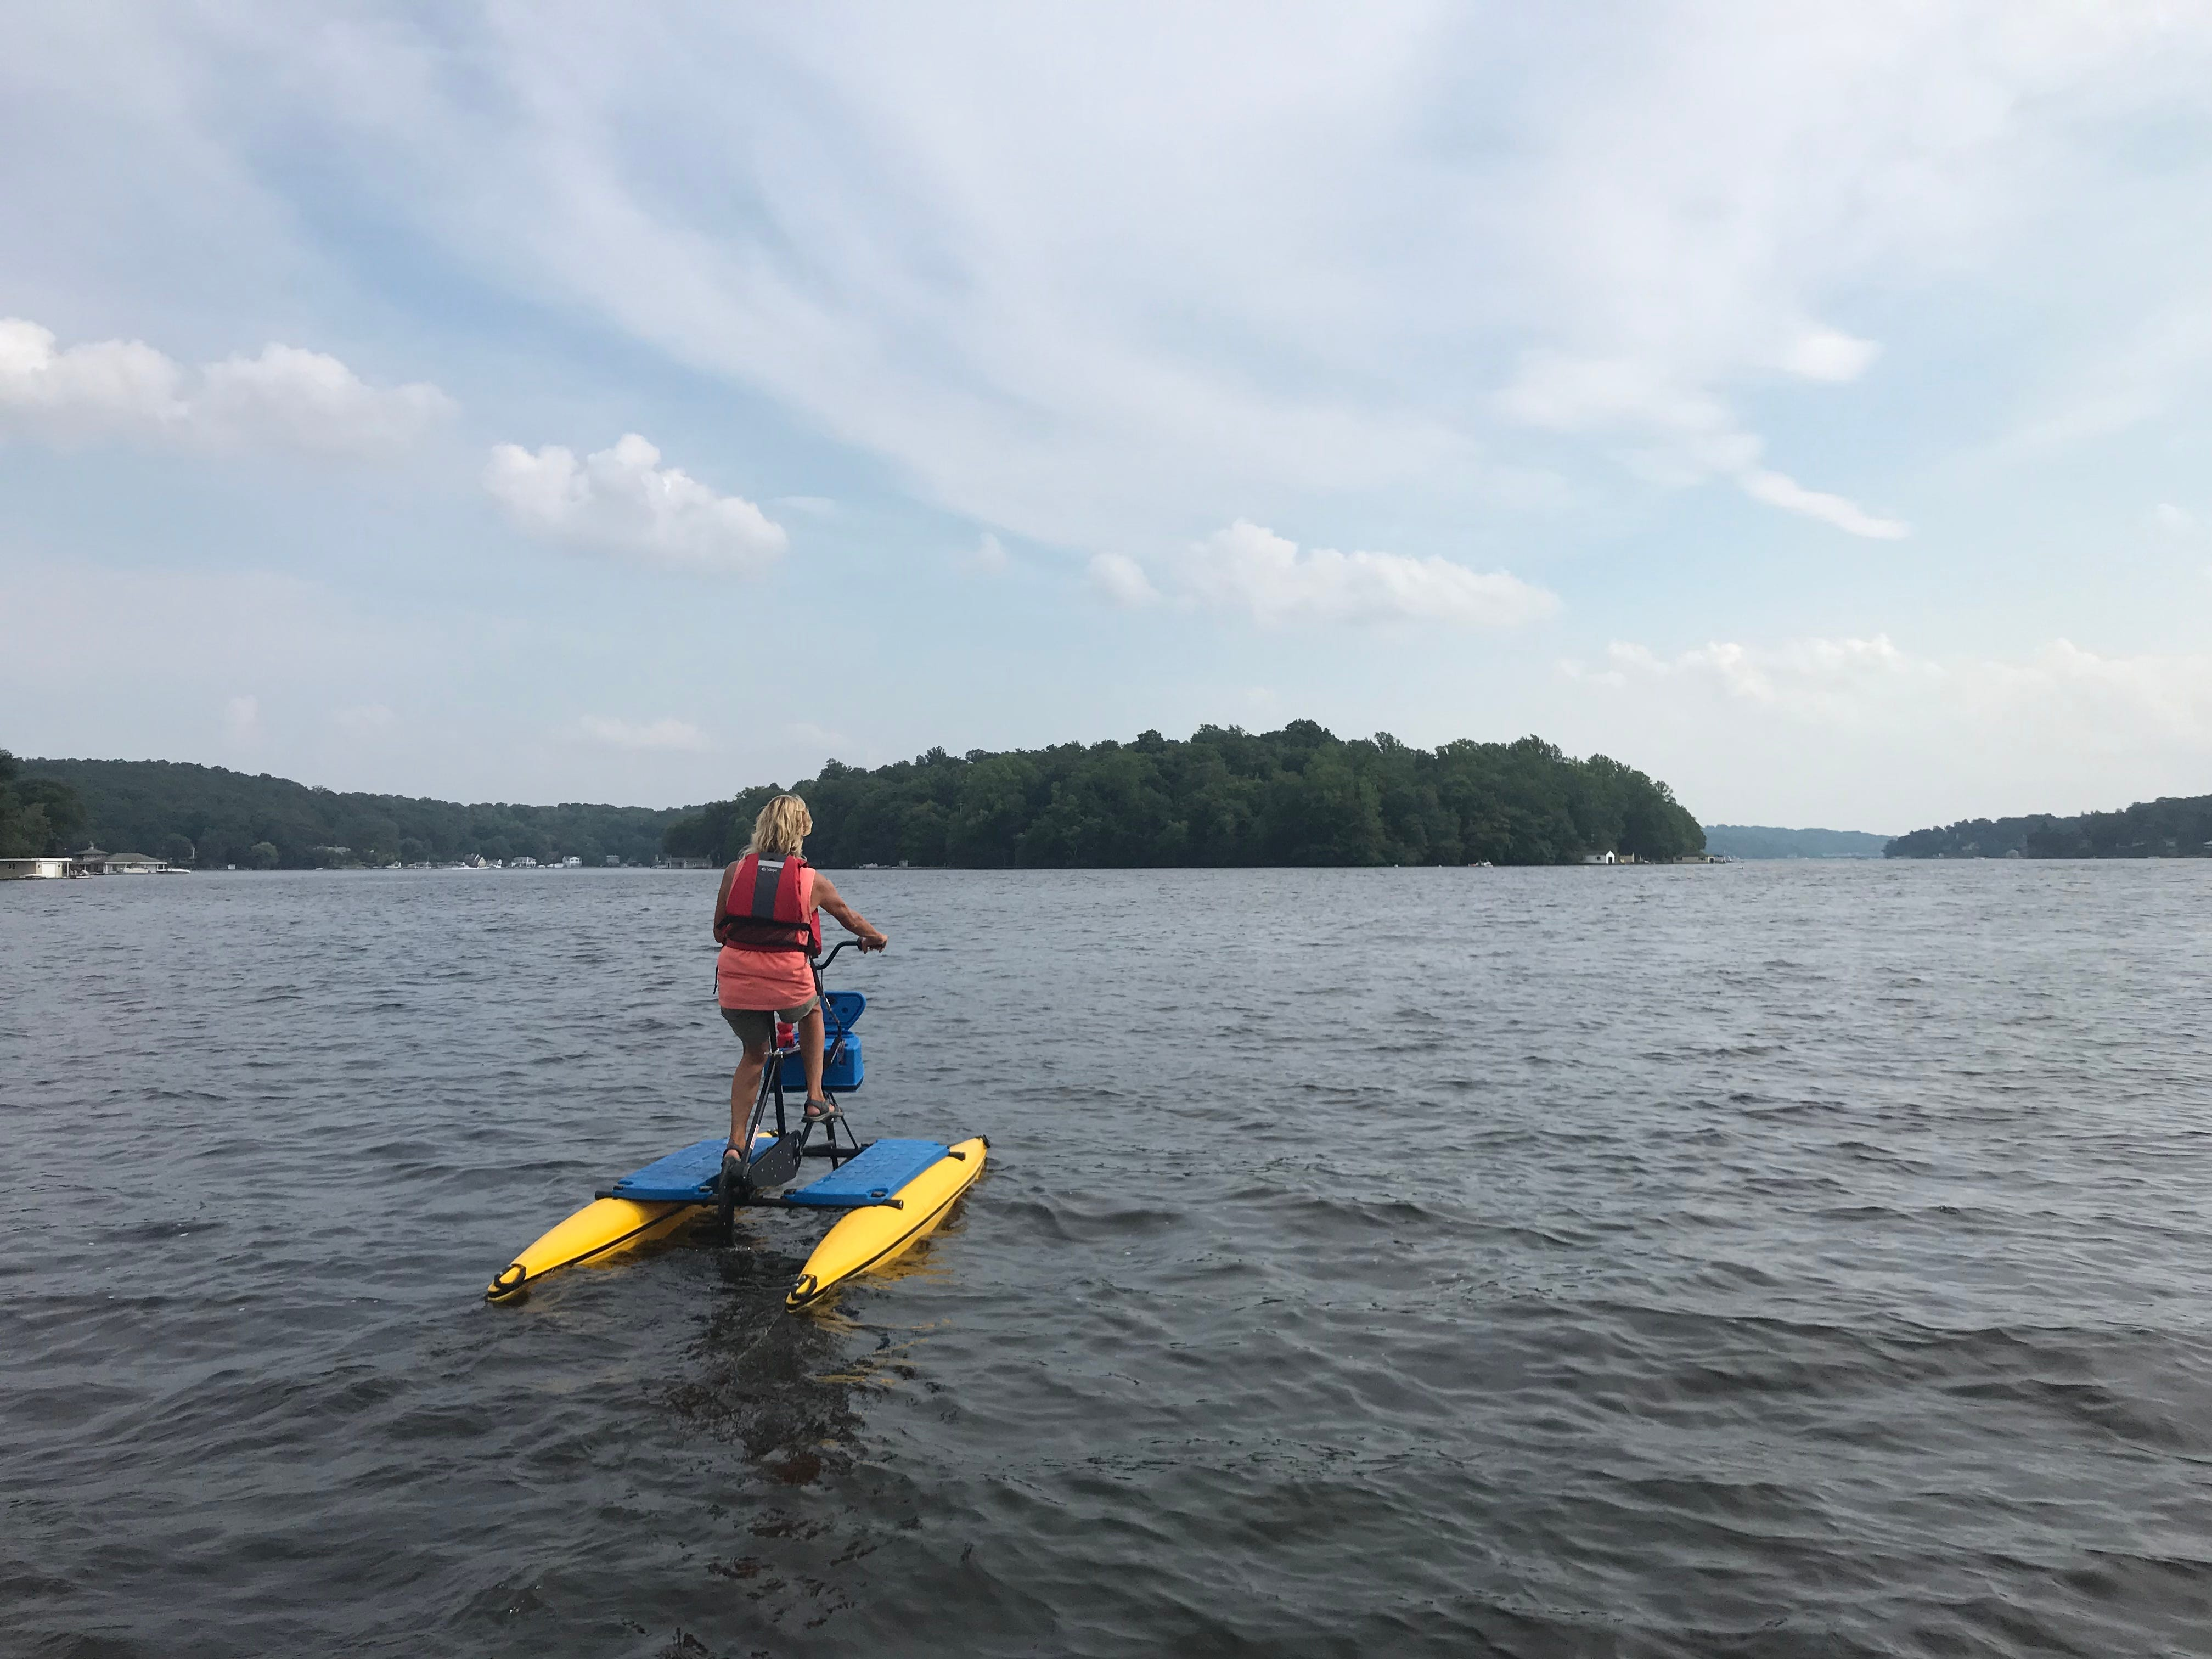 Patty Cinelli, manager at Lake Hopatcong Adventure Club, gives a tour on a hydrobike on Tues., Aug. 7, 2018.